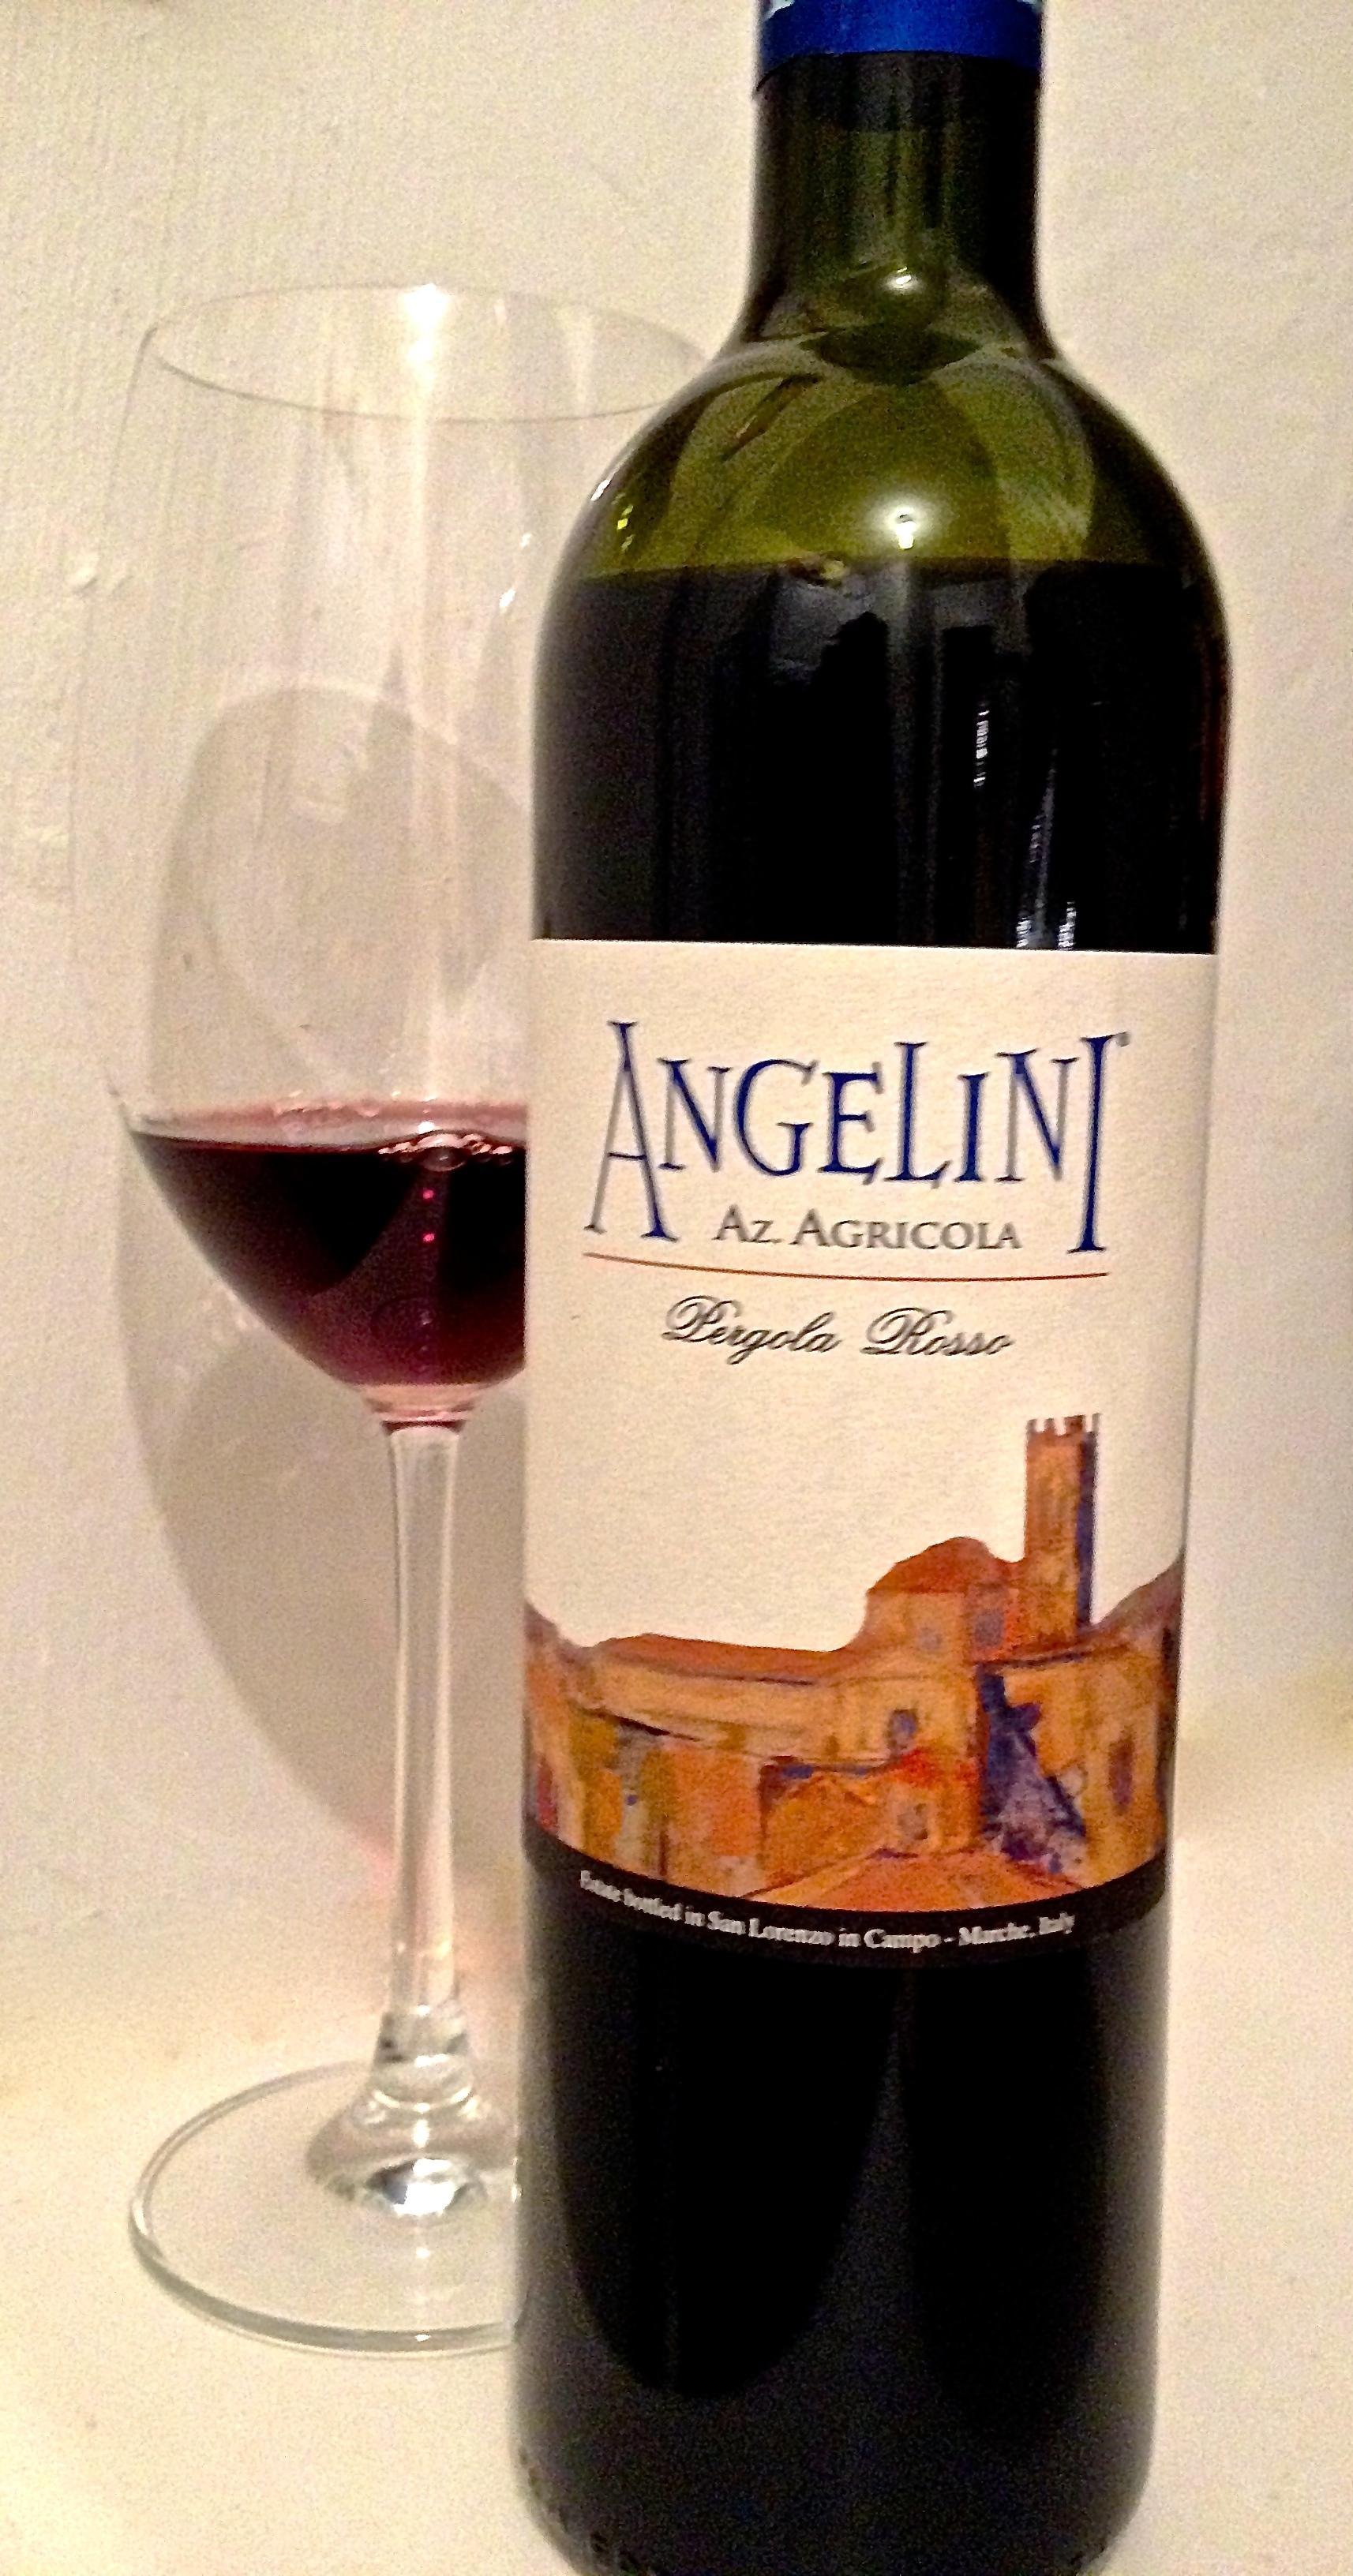 Interesting Wines of Italy: 2012 Angelini Pergola Rosso 3